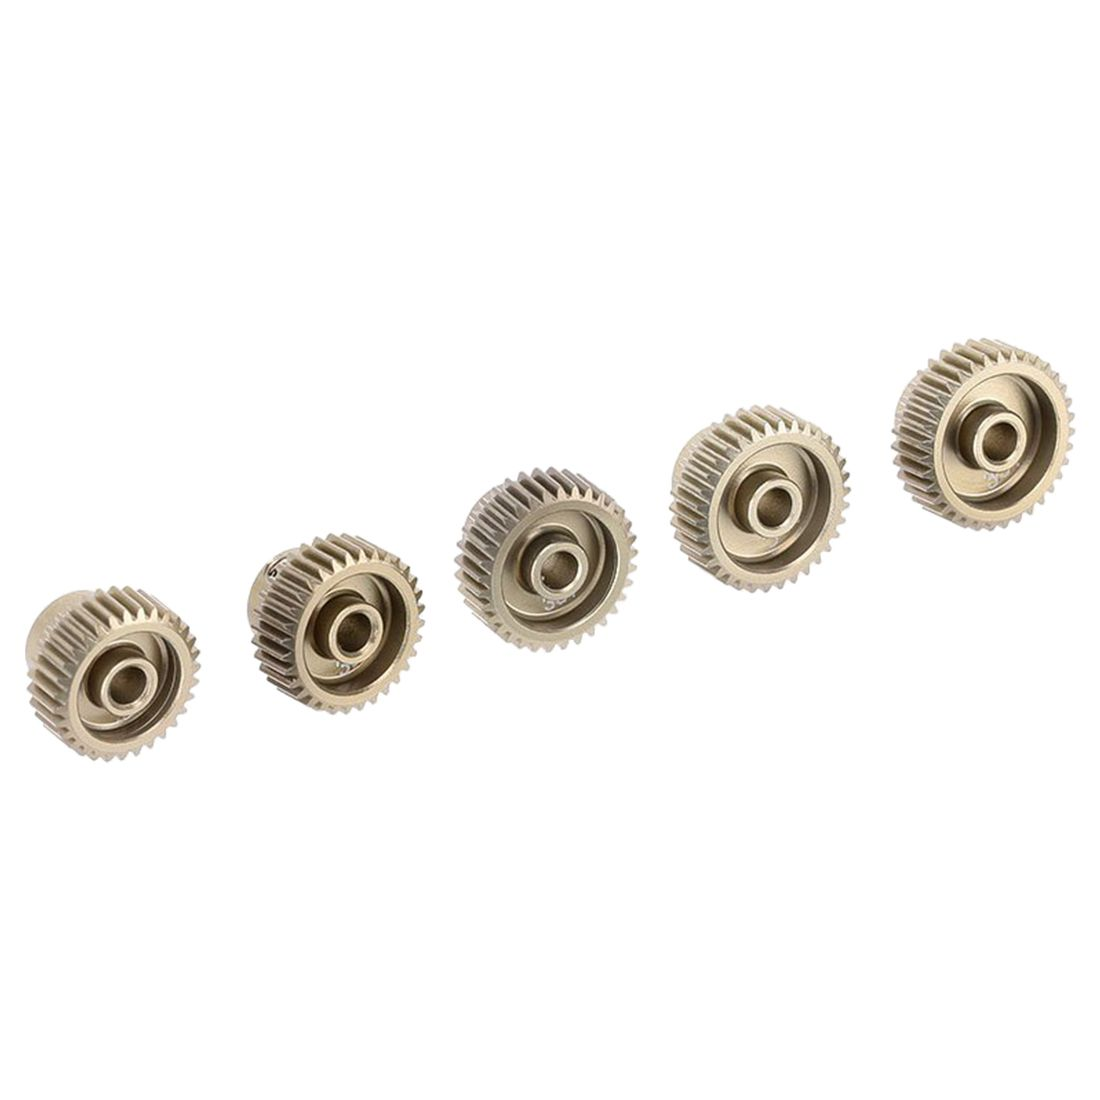 HOT SALE 5pcs 64DP 3.175mm 31T 32T 33T 34T 35T Pinion Motor Gear Set for 1/10 RC Car Brushed Brushless Motor